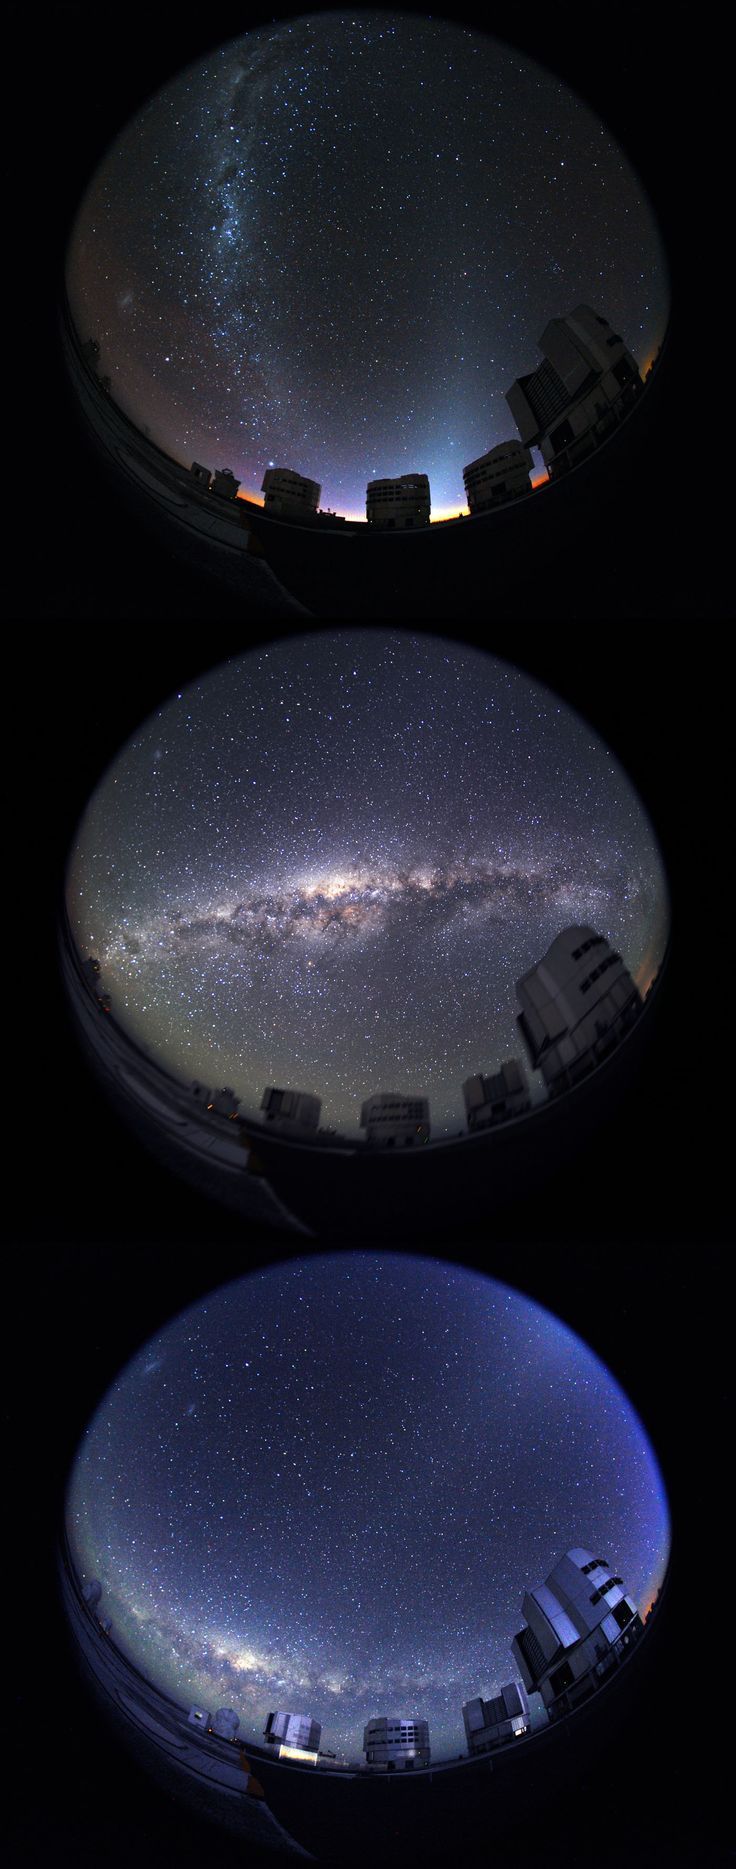 The Milky way in the sky of Cerro Paranal, from twilight to dawn... (credit: S.Brunier/ESO)